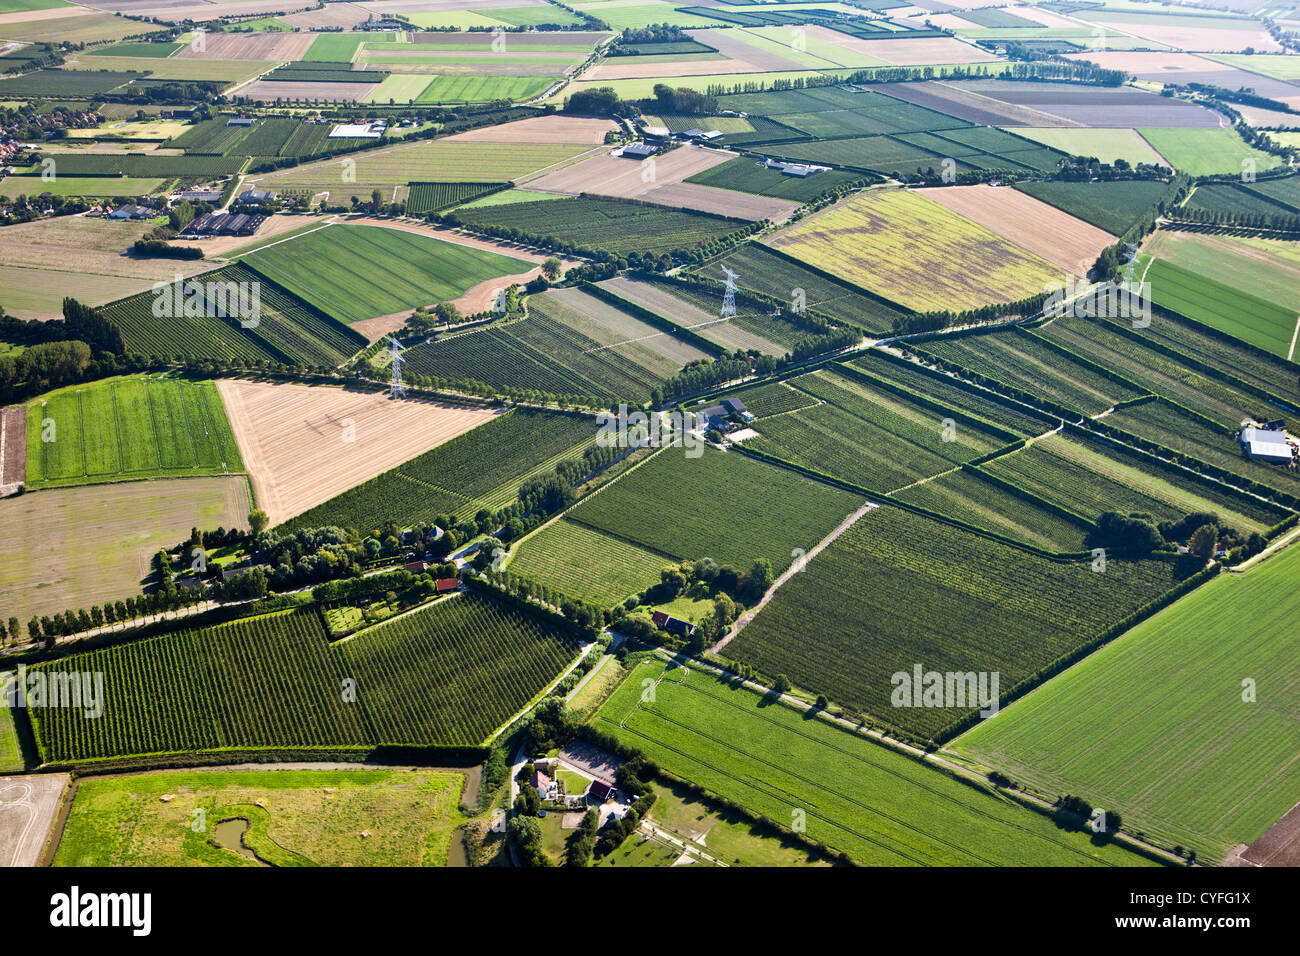 The Netherlands, Kloosterzande, Country side. Farms and farmland. Aerial. - Stock Image